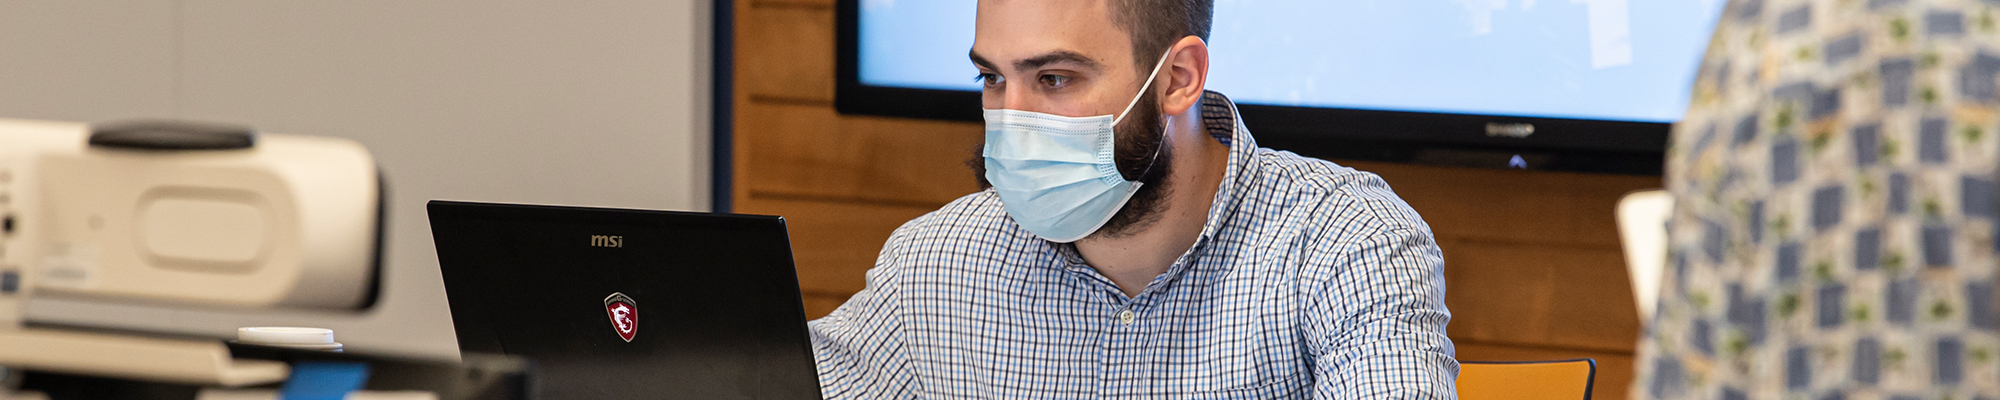 Man working on a computer with a face mask on